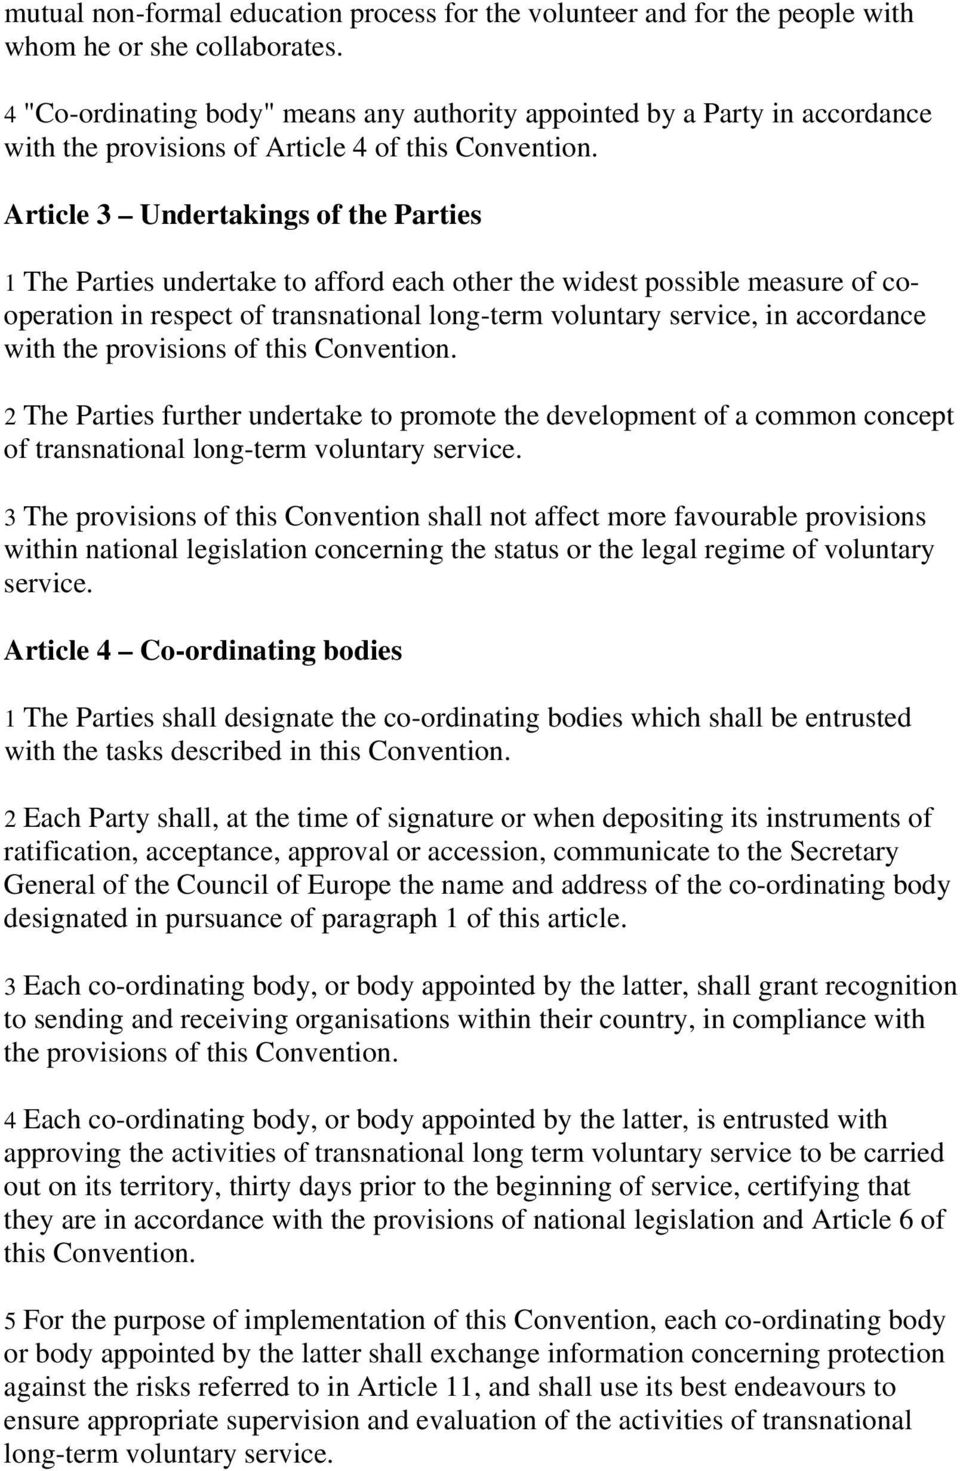 Article 3 Undertakings of the Parties 1 The Parties undertake to afford each other the widest possible measure of cooperation in respect of transnational long-term voluntary service, in accordance